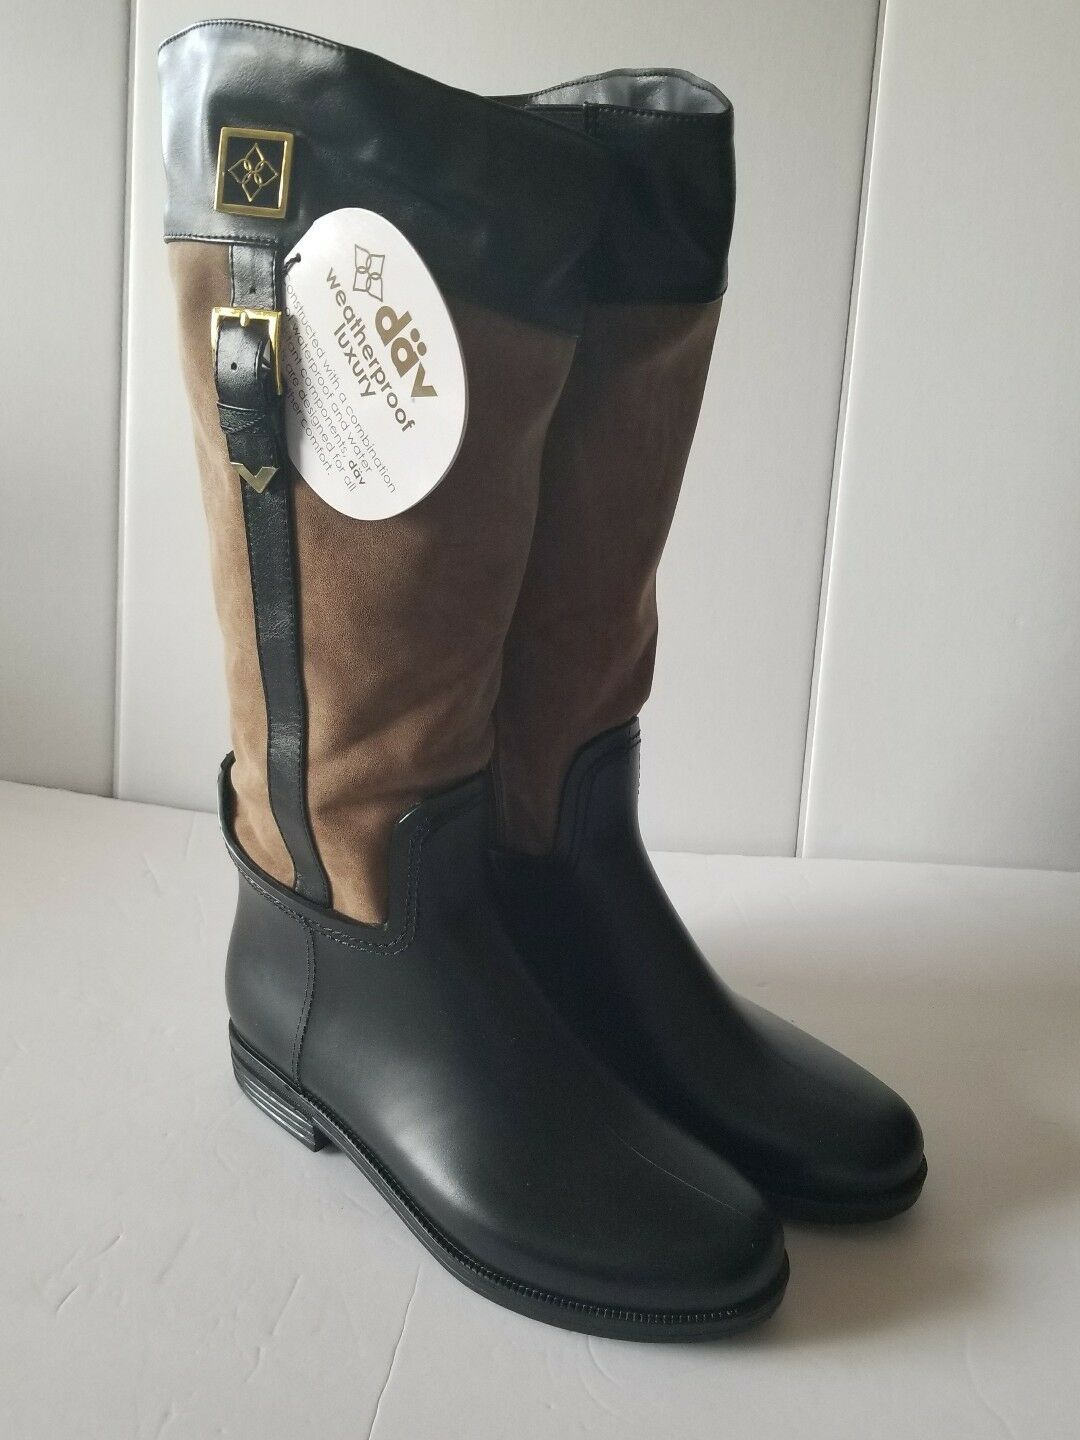 NEW WOMEN'S DAV BLACK BUCKLE COVENTRY SUEDE SUEDE SUEDE RAIN BOOTS SIZE 11 FITS A SIZE 10 eff0e7